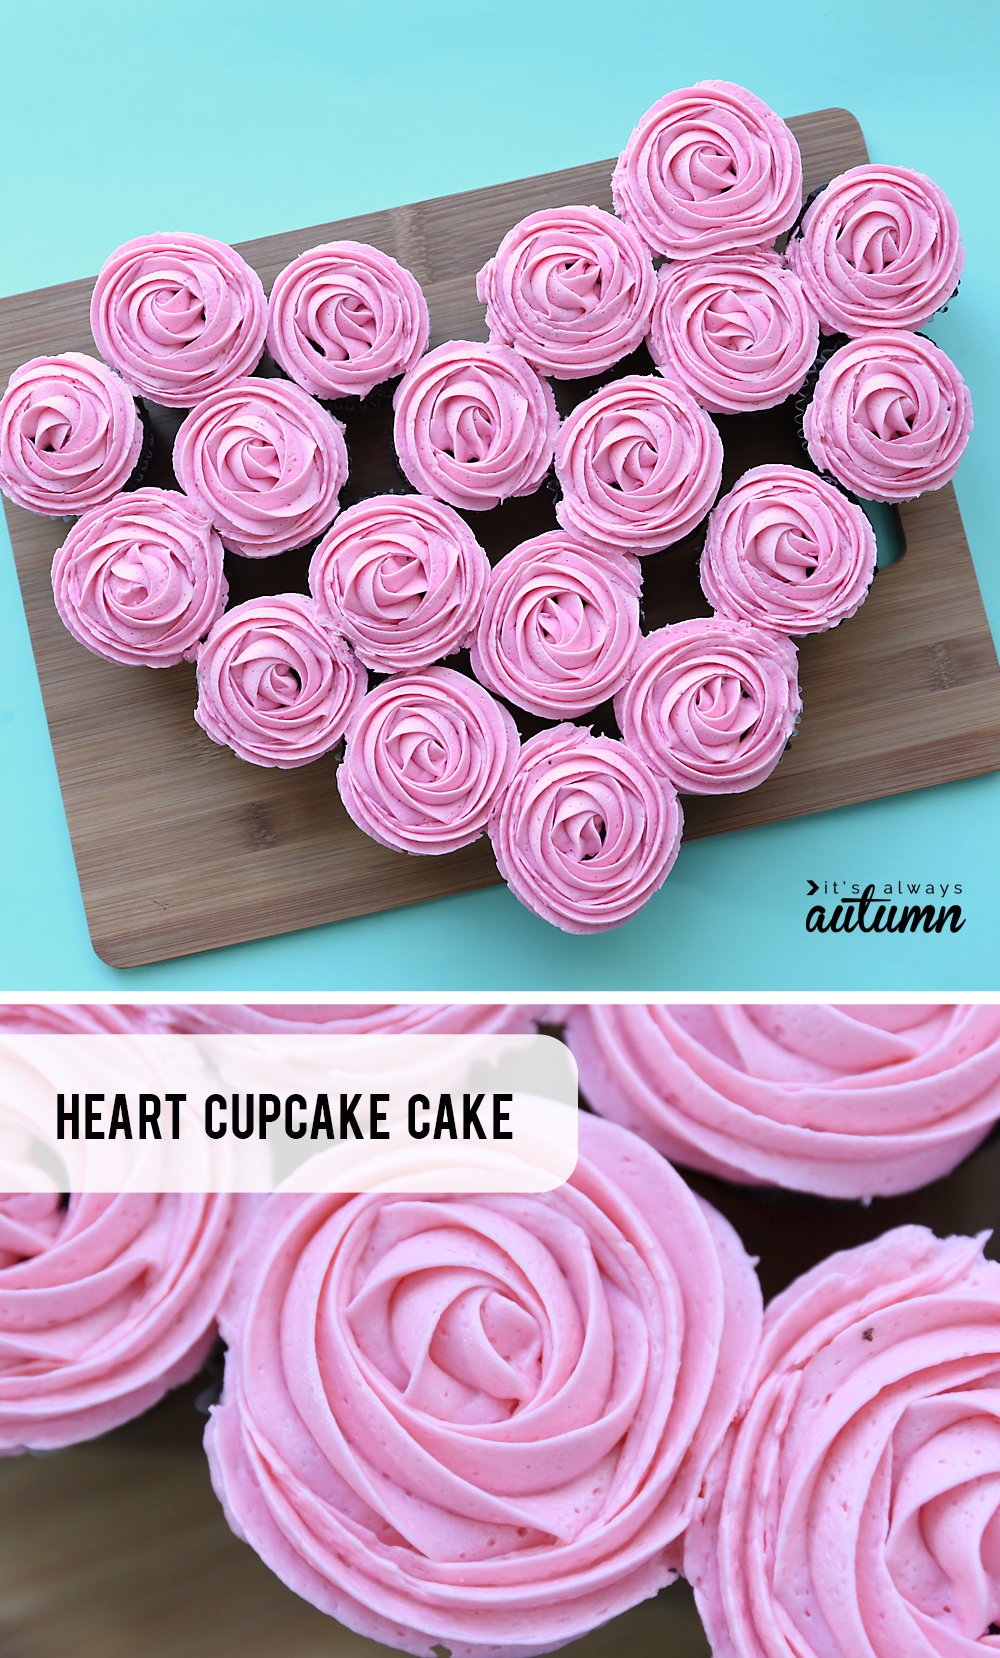 How To Make A Heart Shaped Cupcake Pullapart Cake For Valentines Day Easy Treat